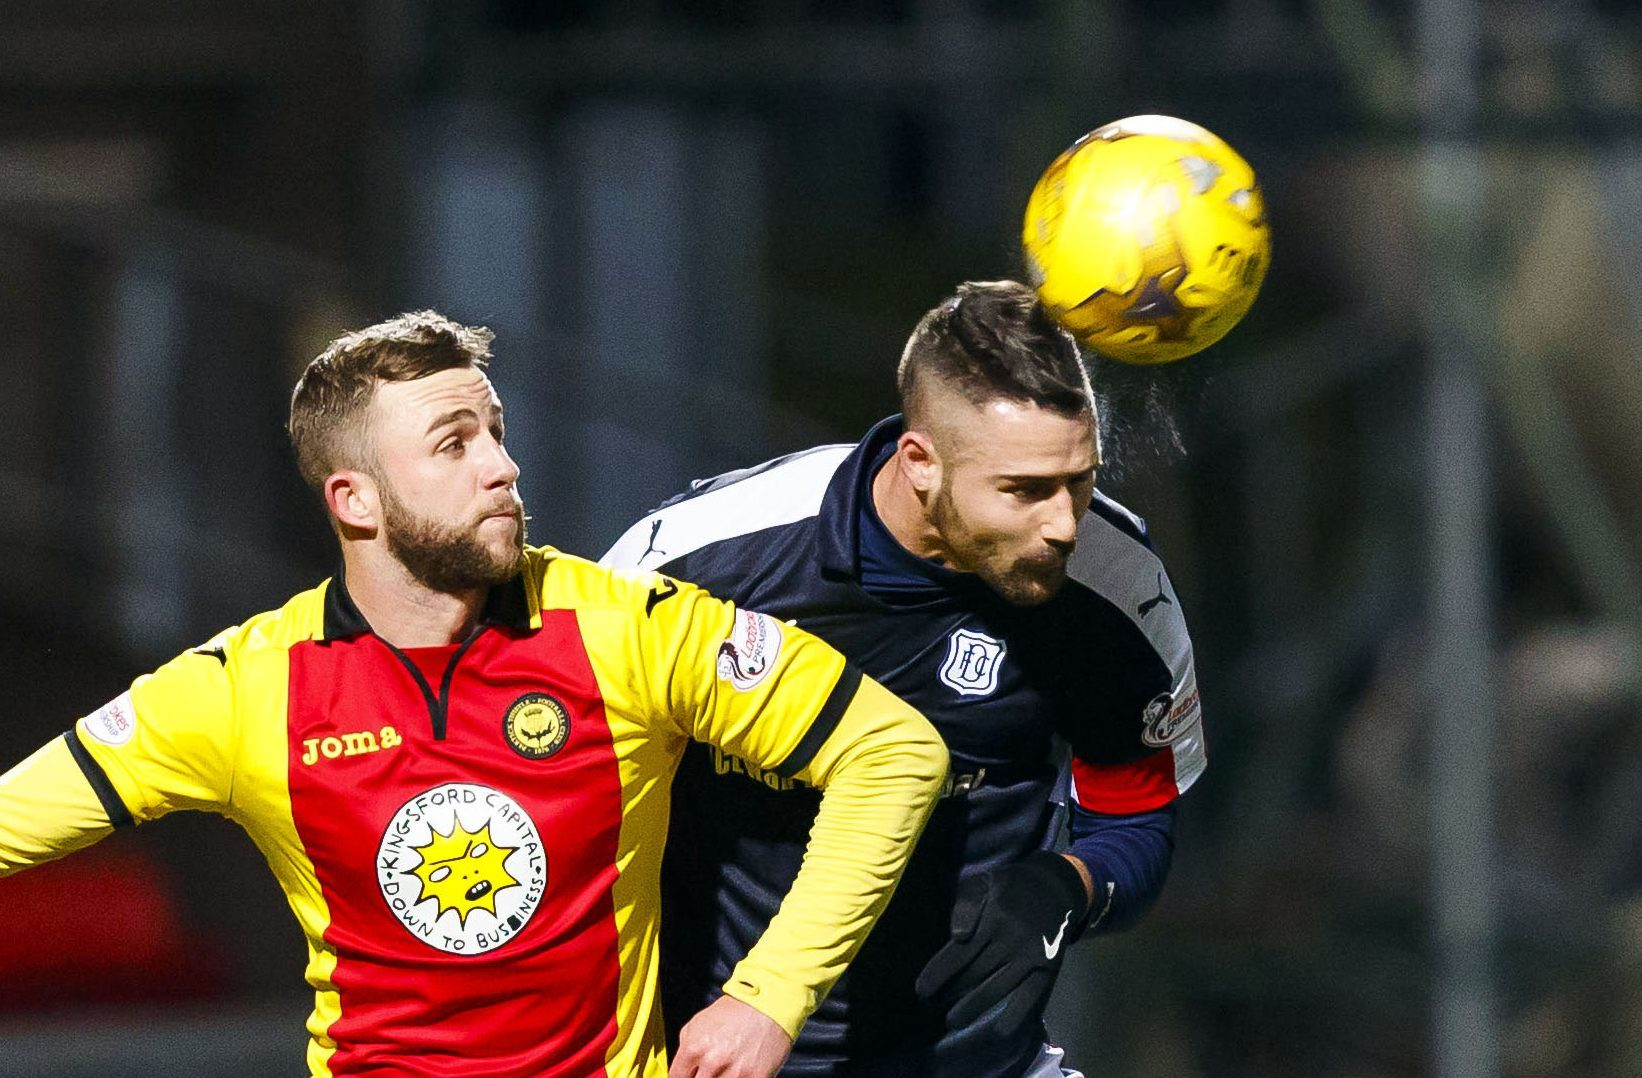 Marcus Haber in action at Firhill in midweek.